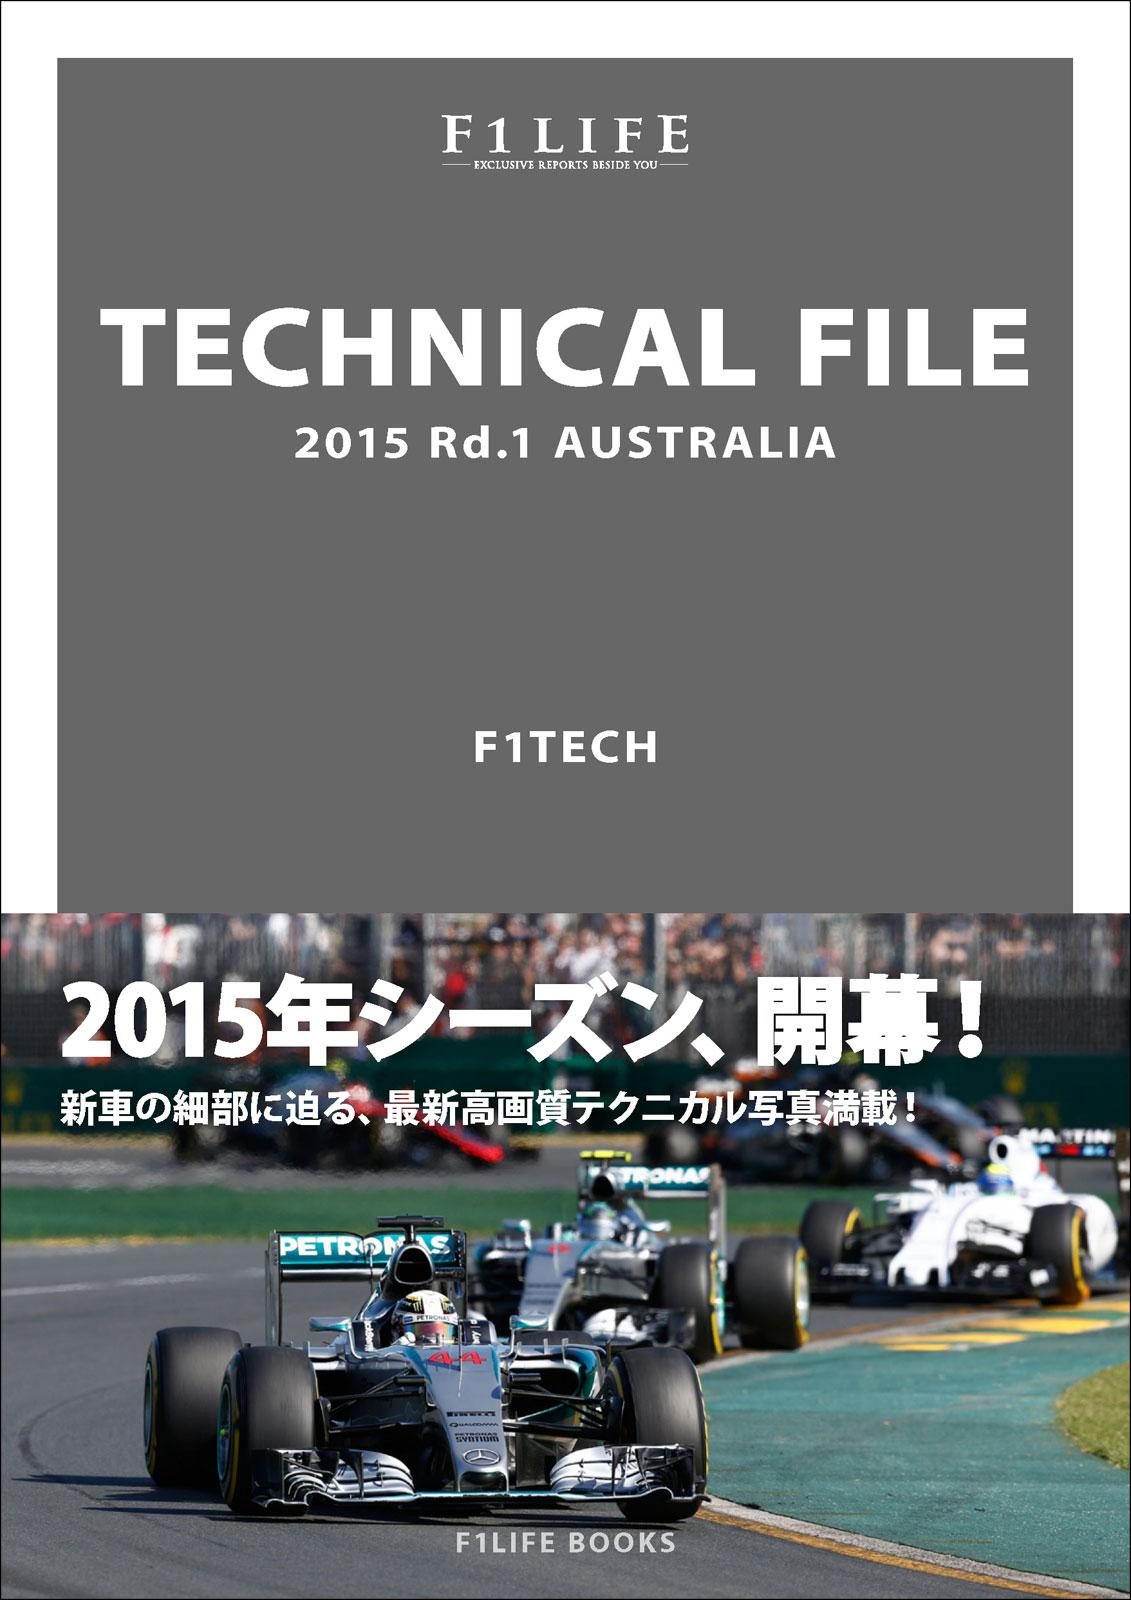 『TECHNICAL FILE』2015 Rd.1 AUSTRALIA